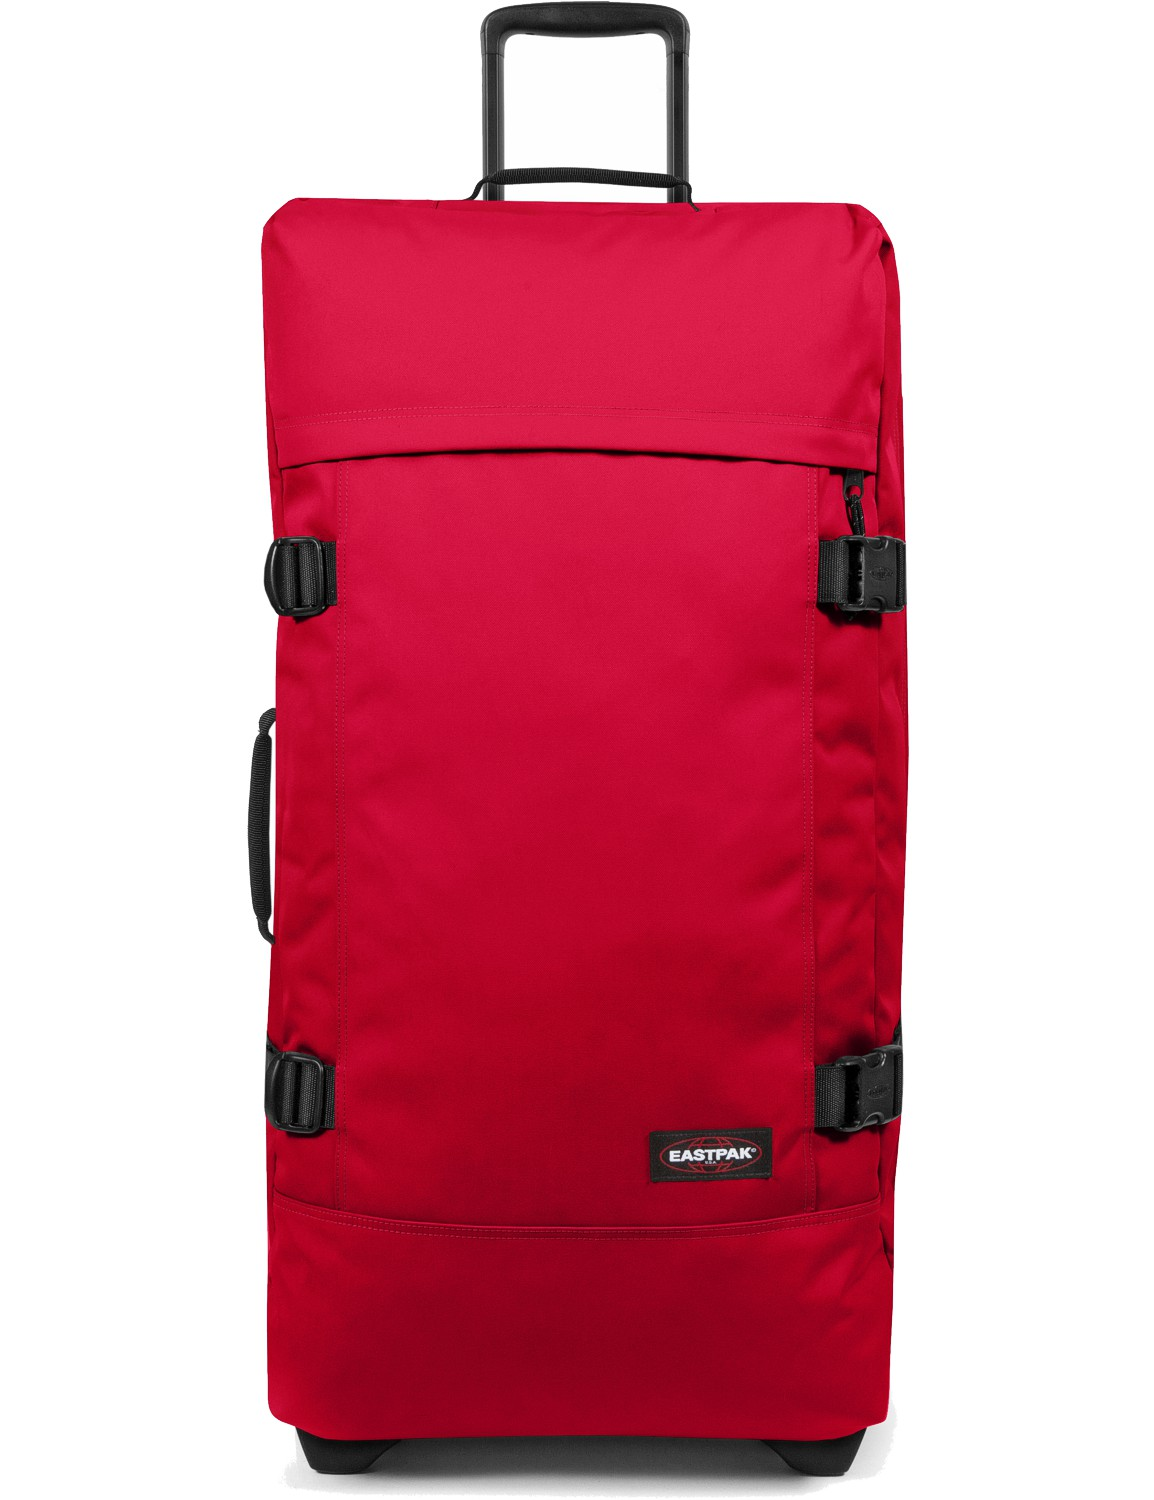 Eastpak Trolley Koffer »Tranverz L« mit TSA Schloss Sailor Red / Rot